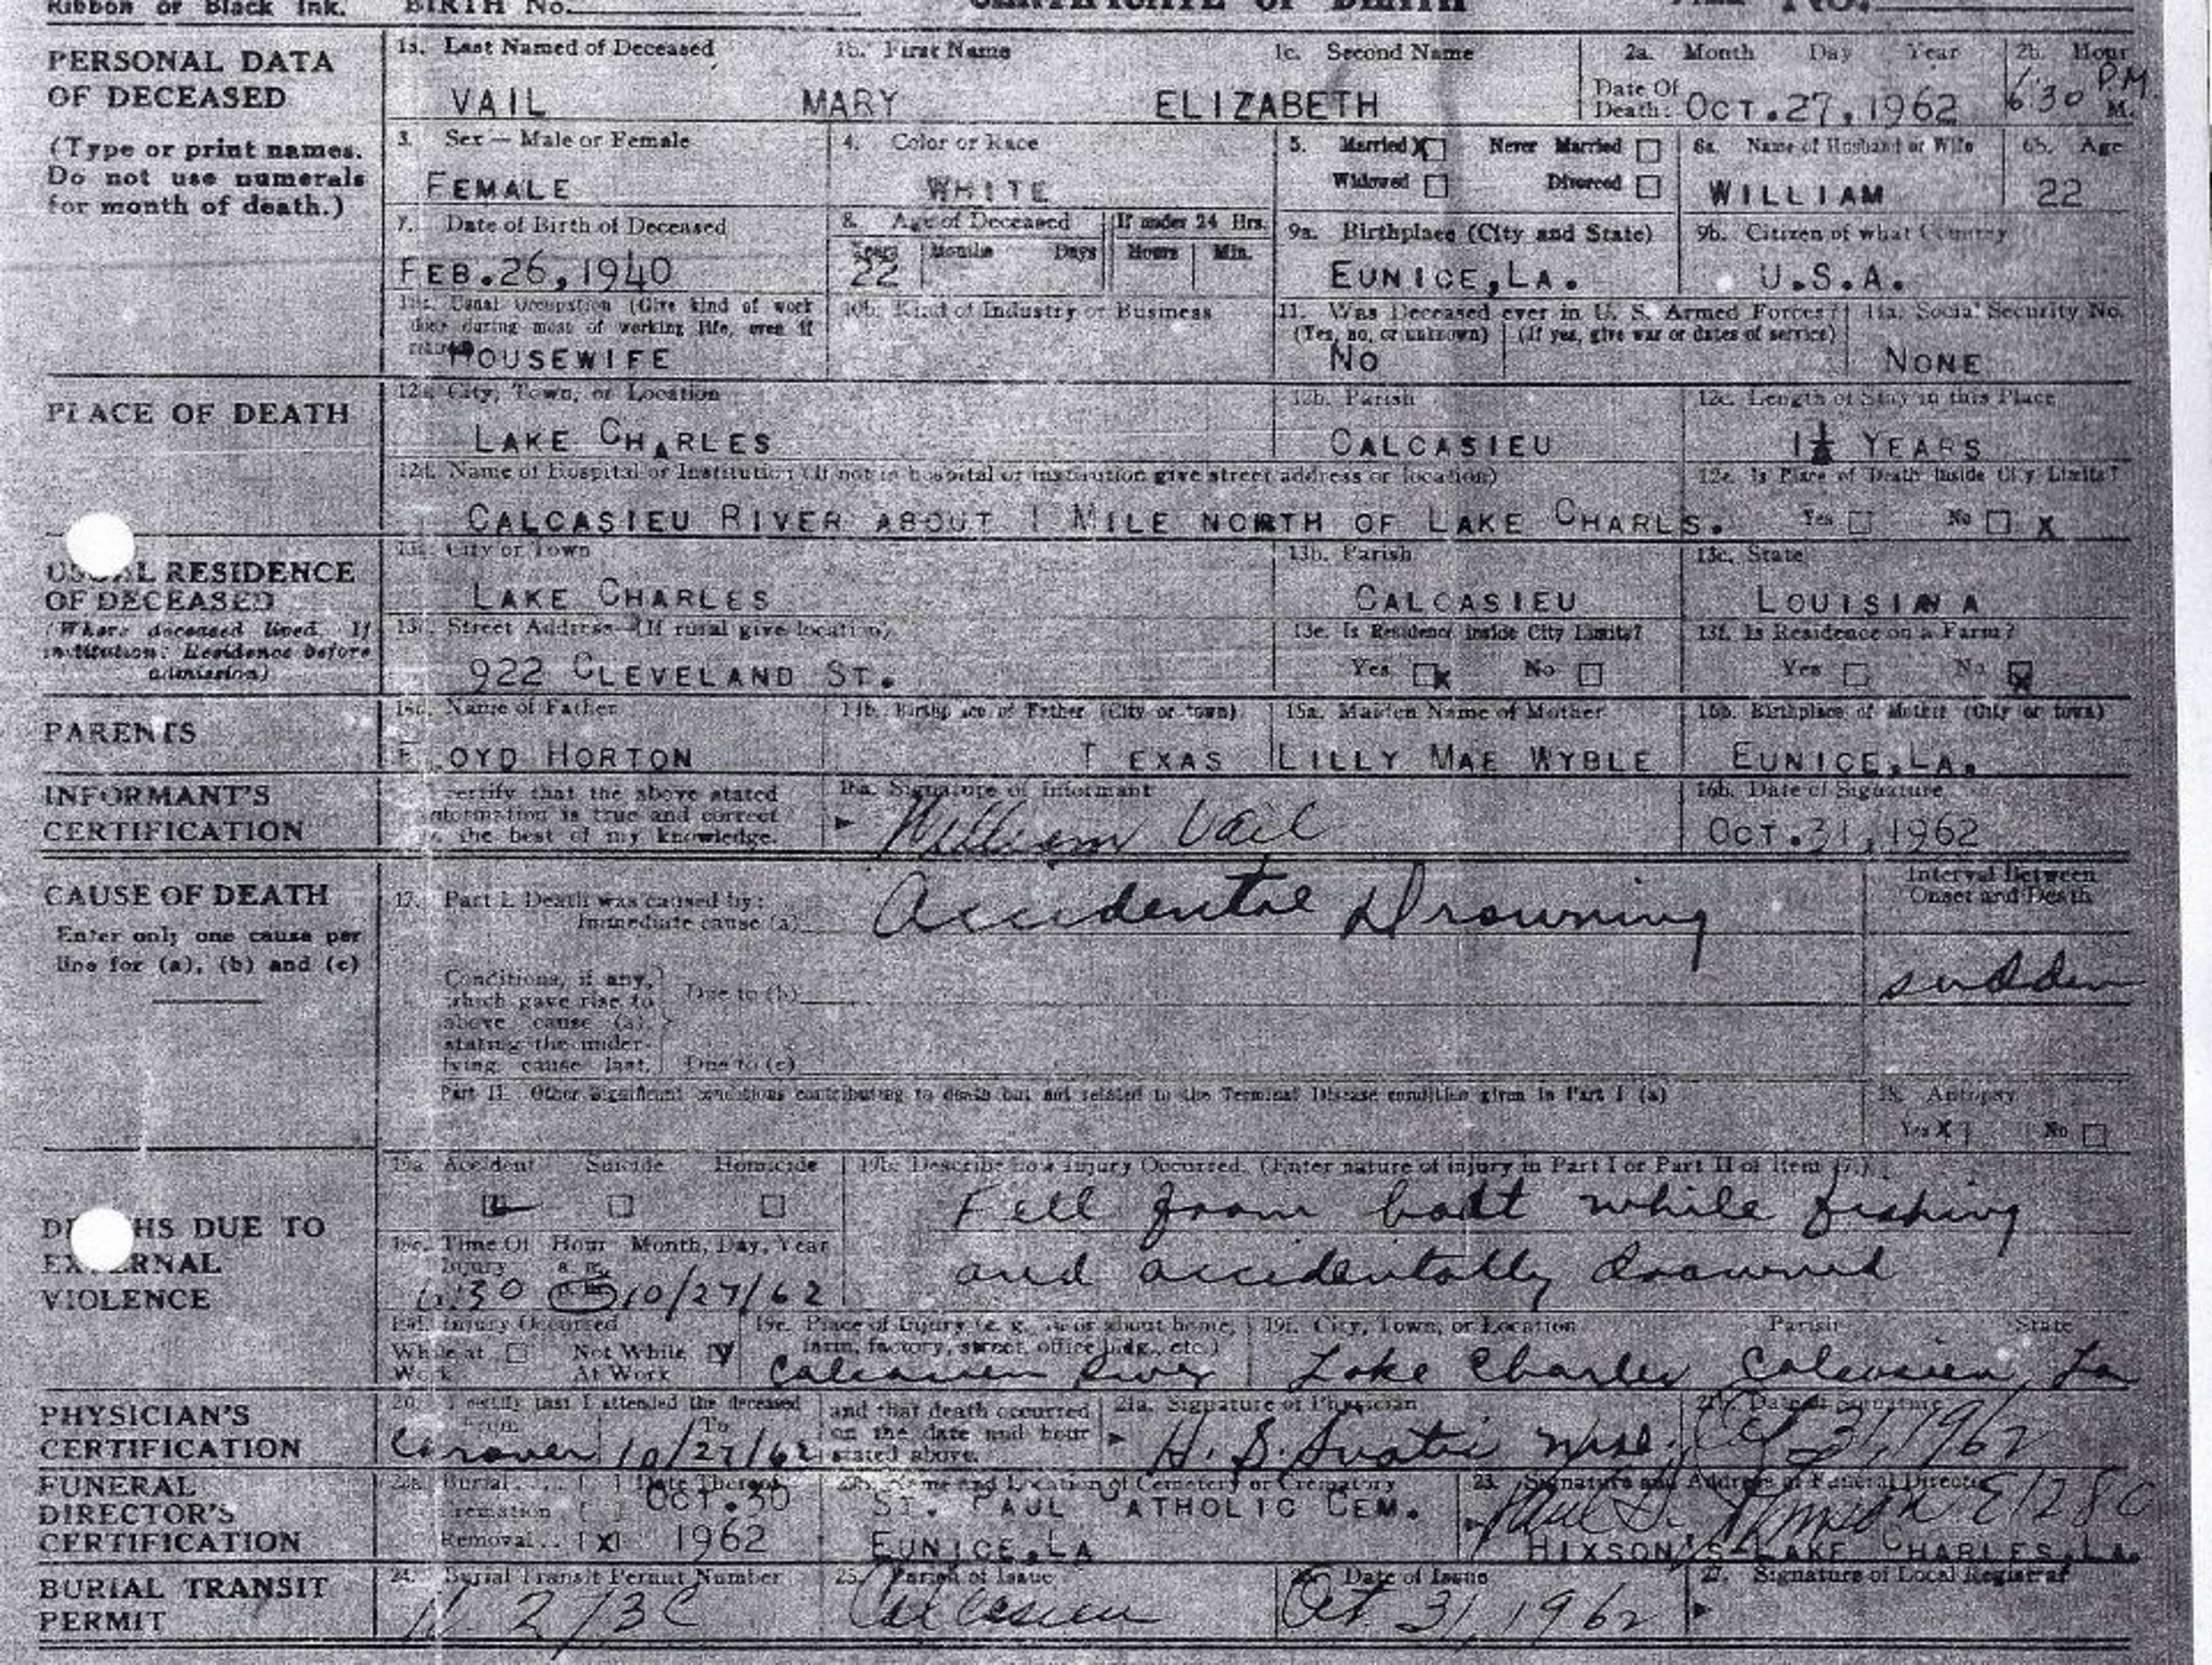 Mary Horton Vail's death certificate has multiple errors,